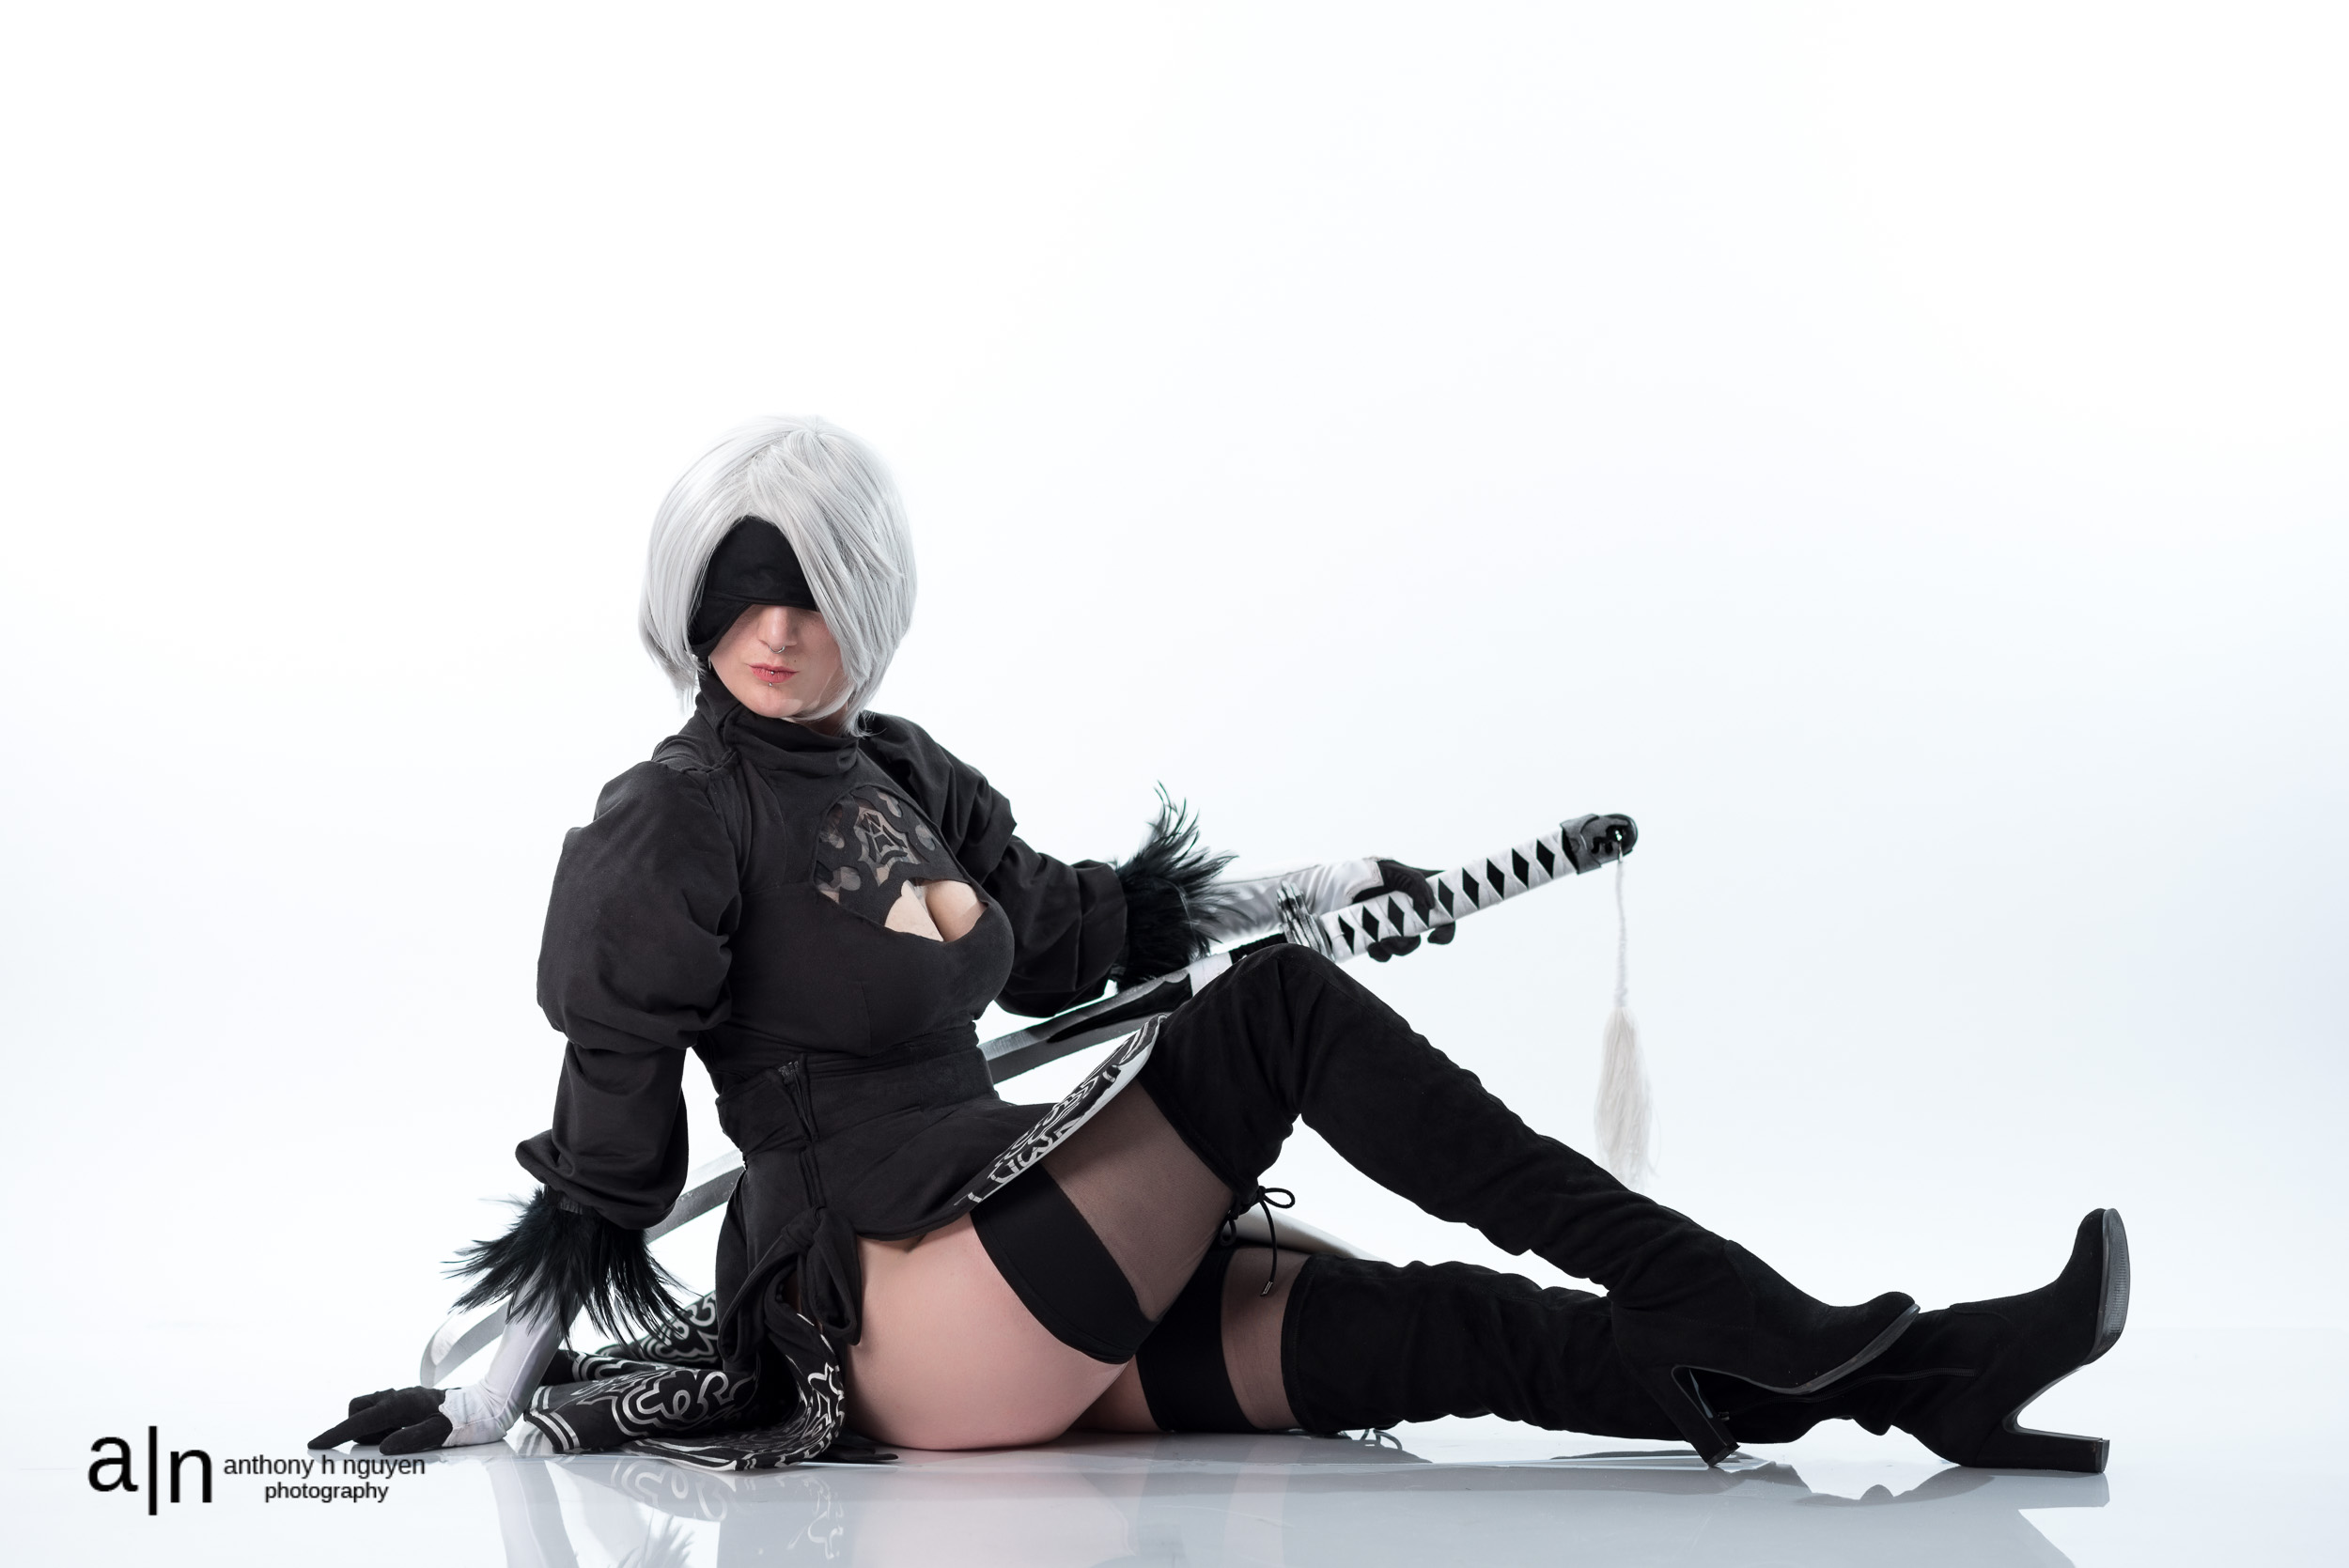 ahnp_yorha_cosplay_blog_20170521-024.jpg